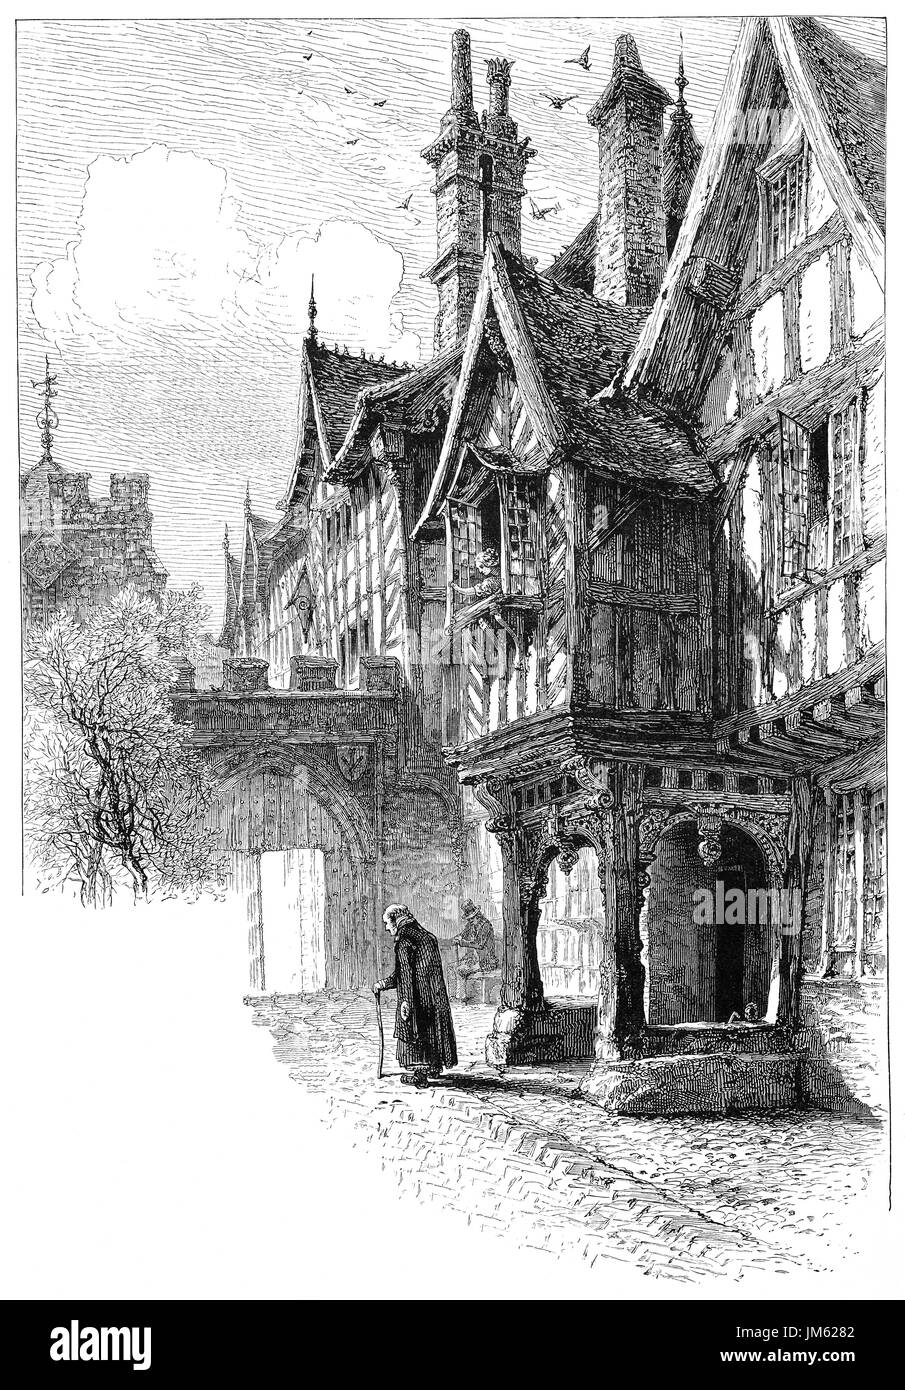 1870: The entrance to the porch of Leicester's Hospital.  The Hospital is a historic group of timber-framed buildings in Warwick High Street dating mainly from the late 14th Century. In the reign of Queen Elizabeth I it became a place of retirement for old warriors known as the Brethren. The Brethren and Master, who still live within the walls of the building, are a living legacy of almost 450 years of history,  Warwickshire, England. - Stock Image